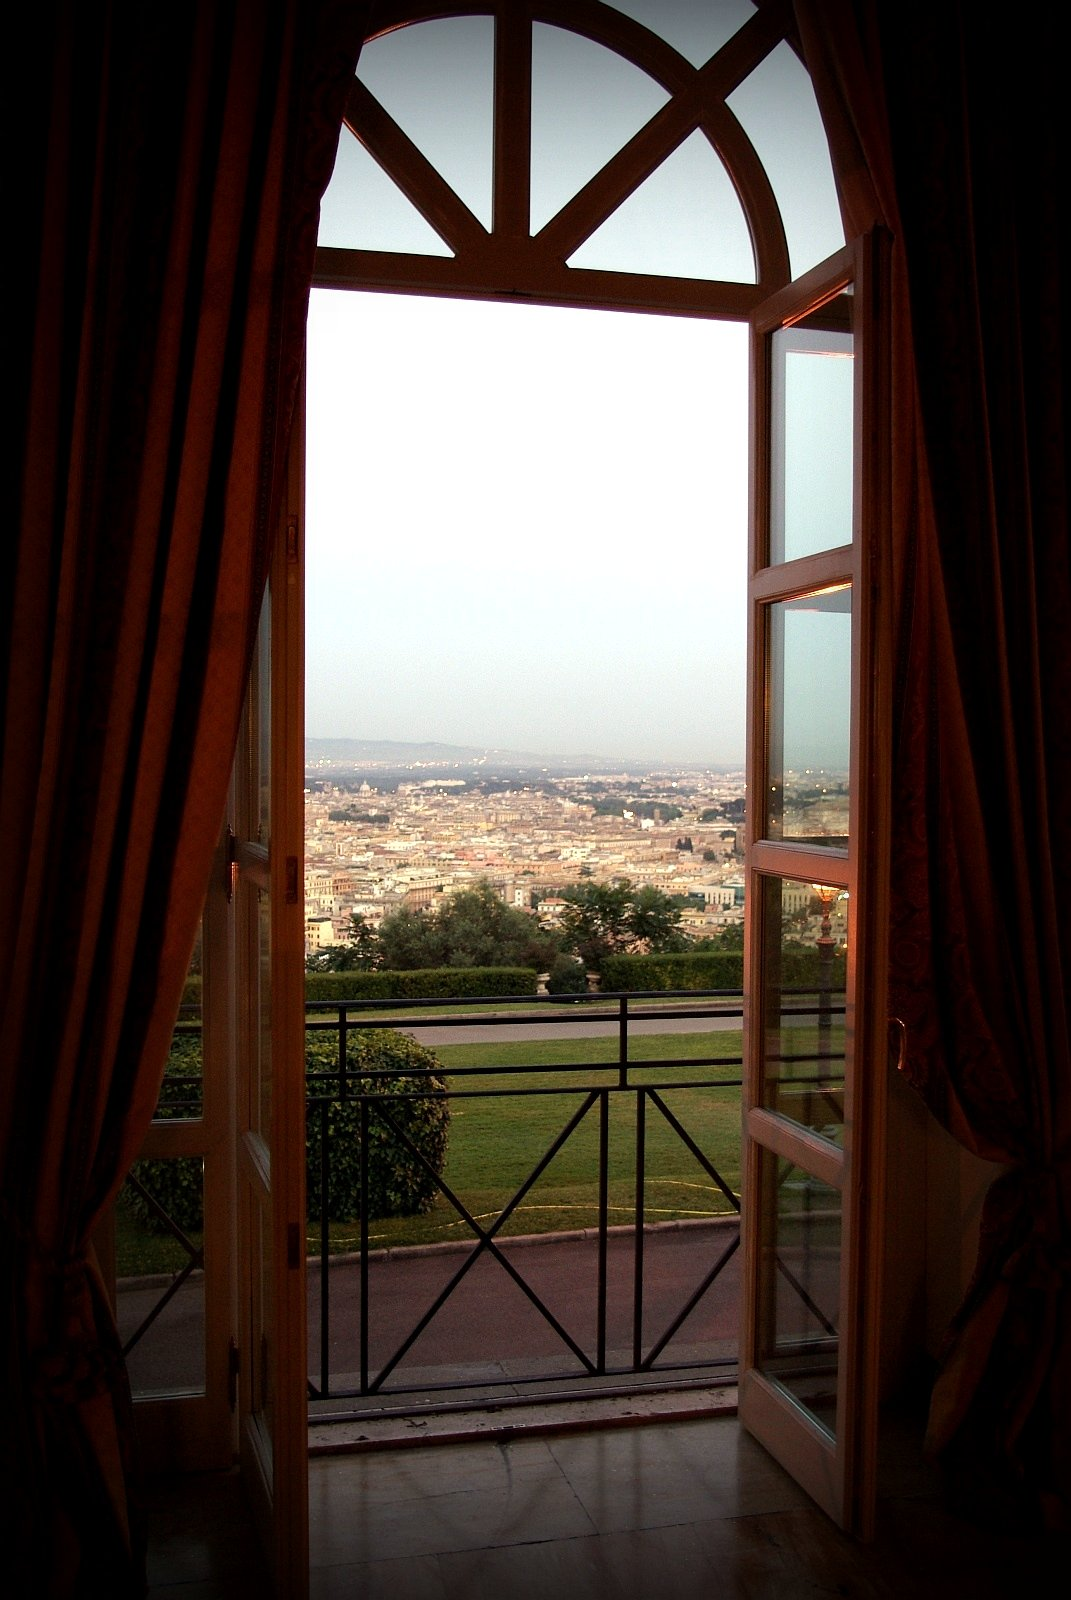 Pin by Dawn Aiello on ROOM WITH A VIEW | Pinterest